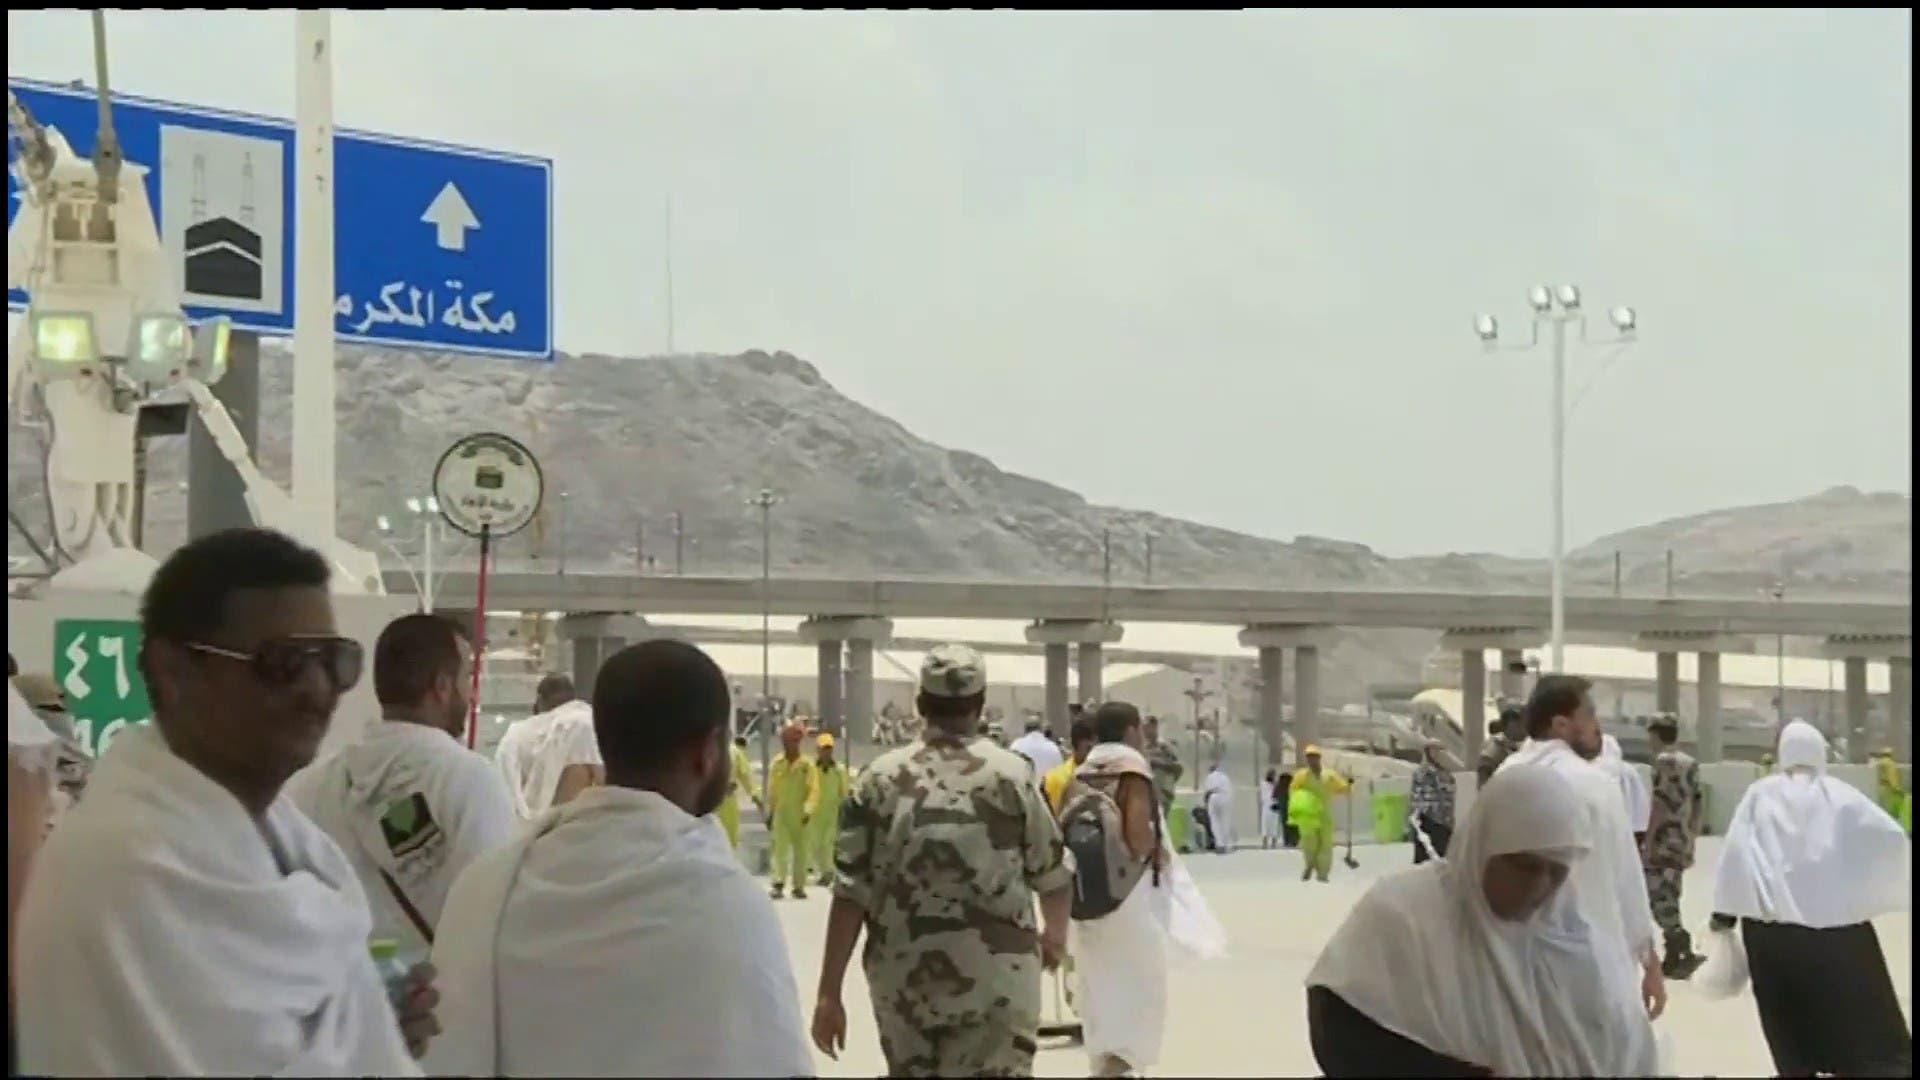 Nearly 300,000 pilgrims to 'stone the devil' per hour in one of final Hajj rites